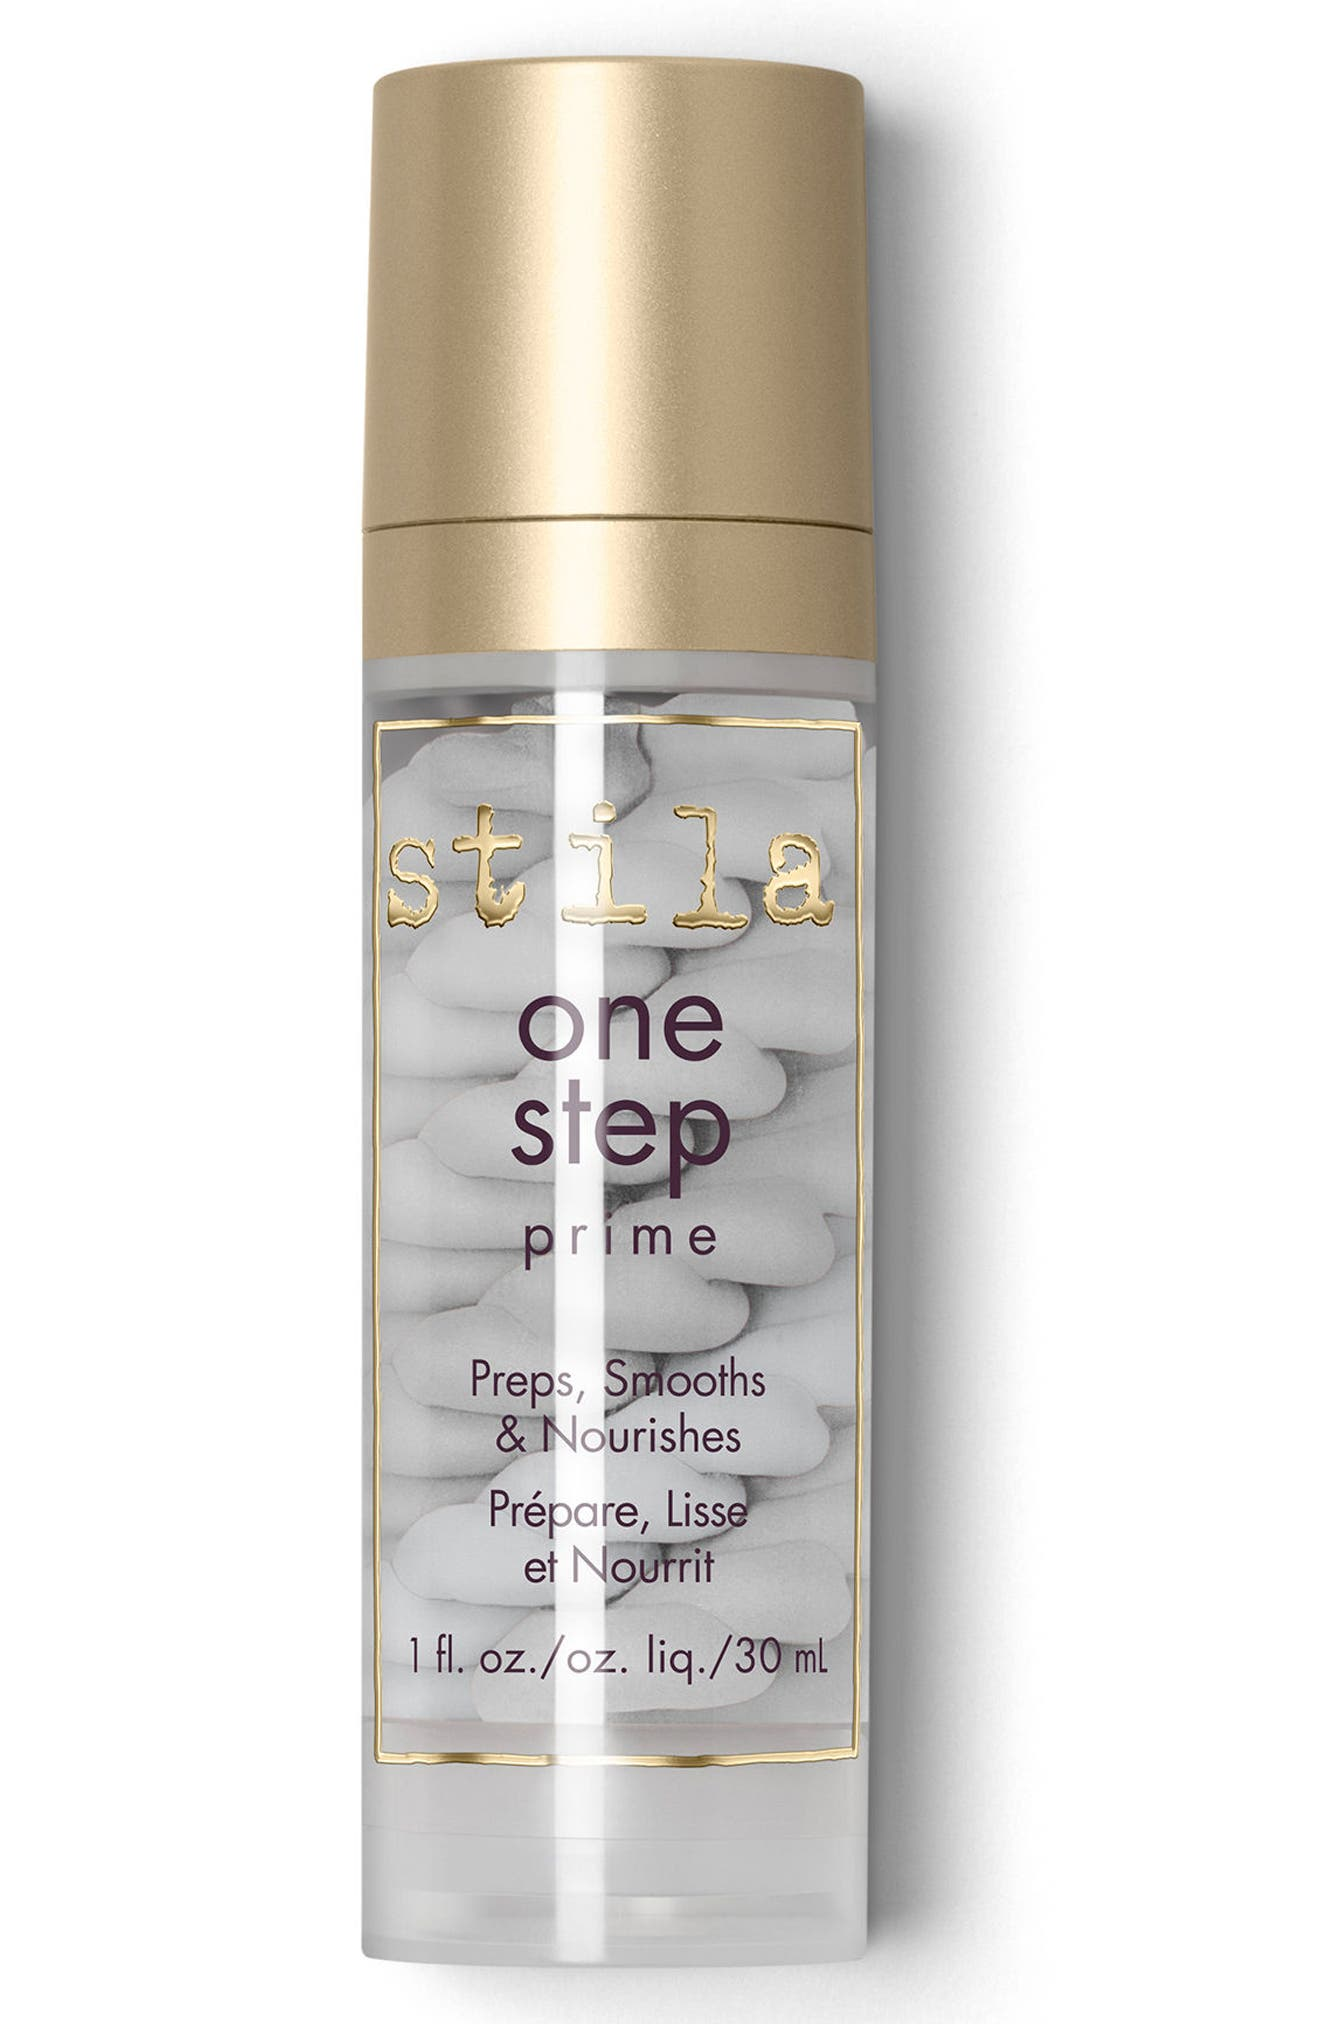 stila one step prime serum primer